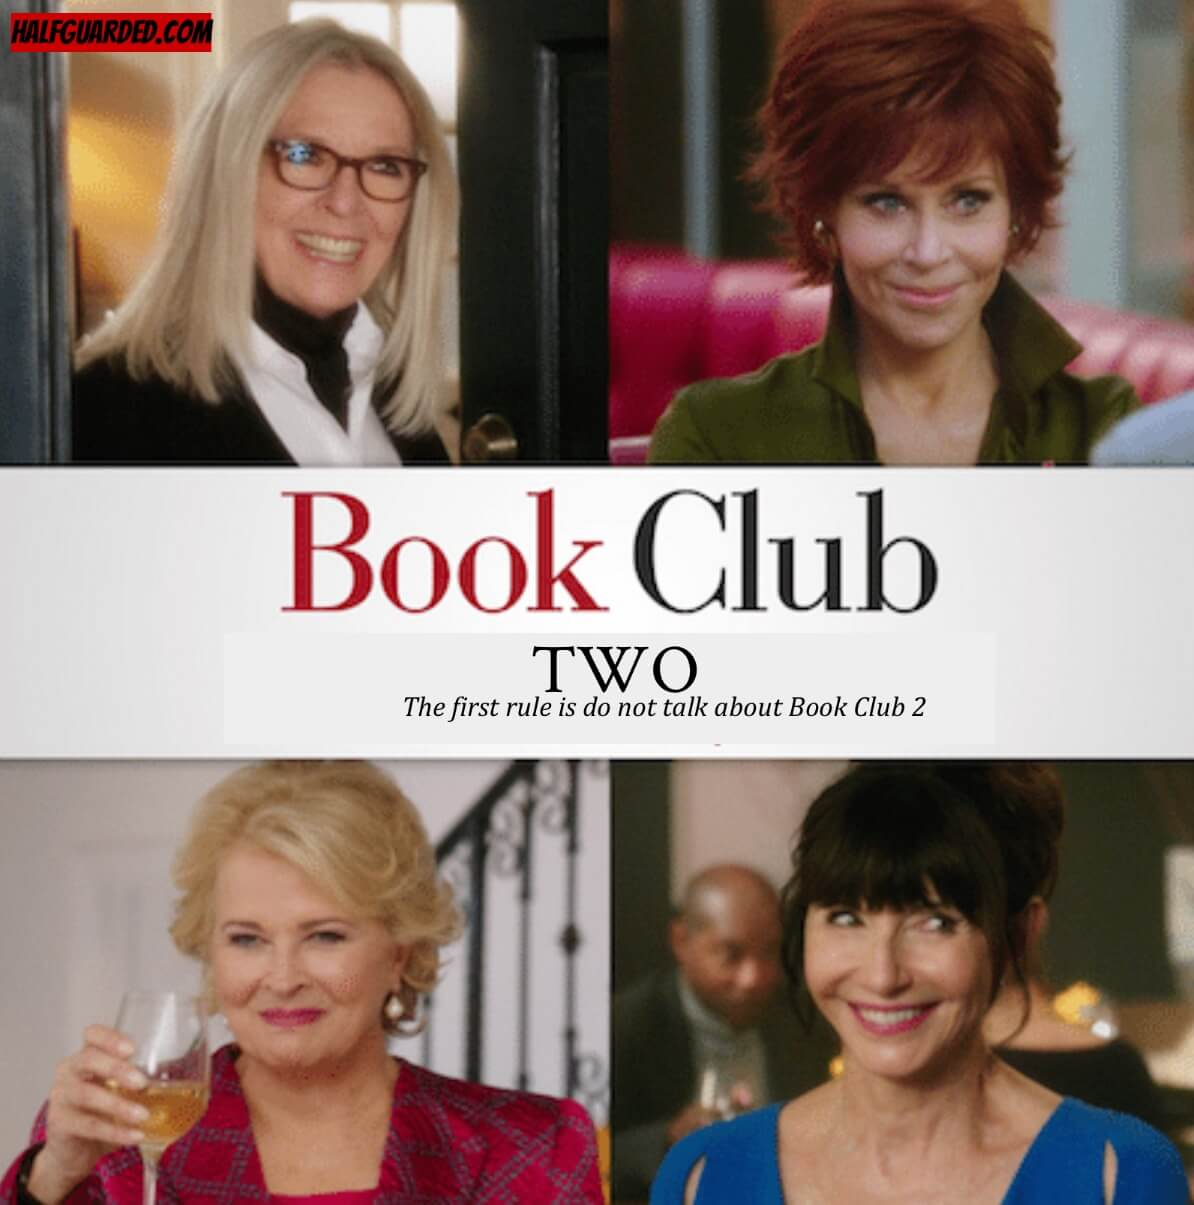 The Book Club 2 (2021) RUMORS, Plot, Cast, and Release Date News - WILL THERE BE The Book Club 2?!